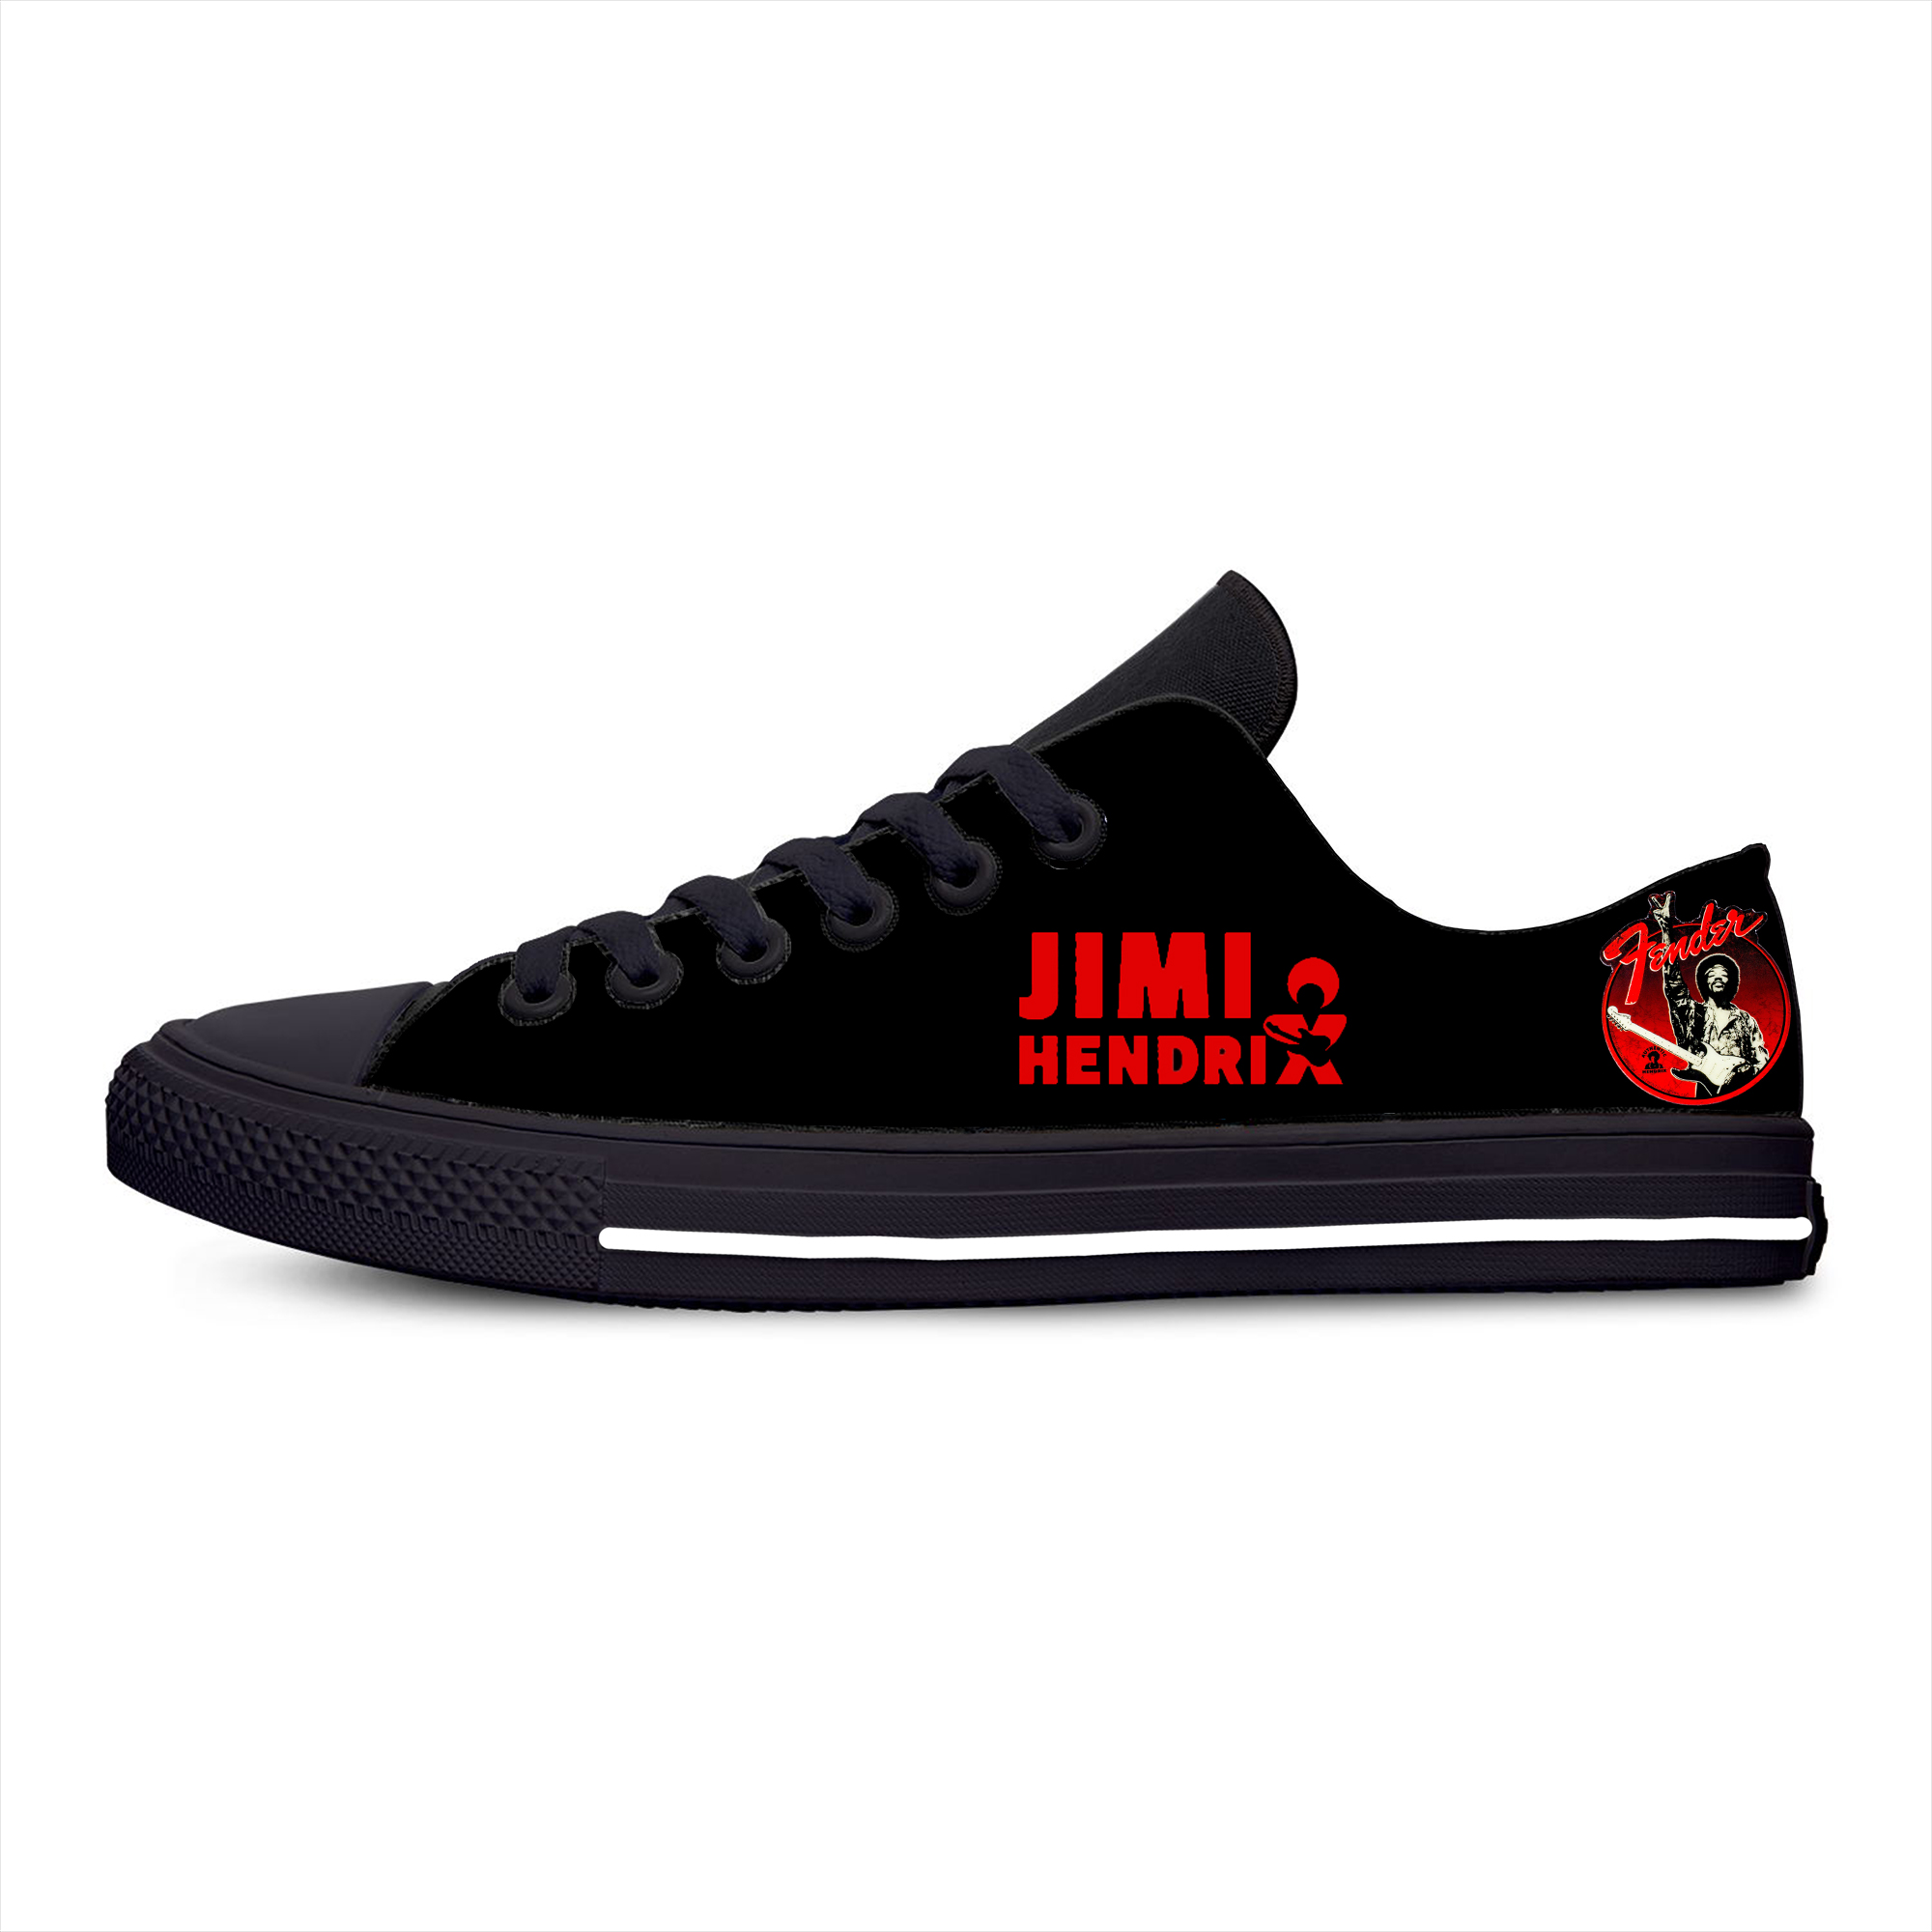 Hendrix Guitar Singer Jimmi Hot Cool Fashion Casual Canvas Shoes Low Top Breathable Lightweight Sneakers 3D Print For Men Women